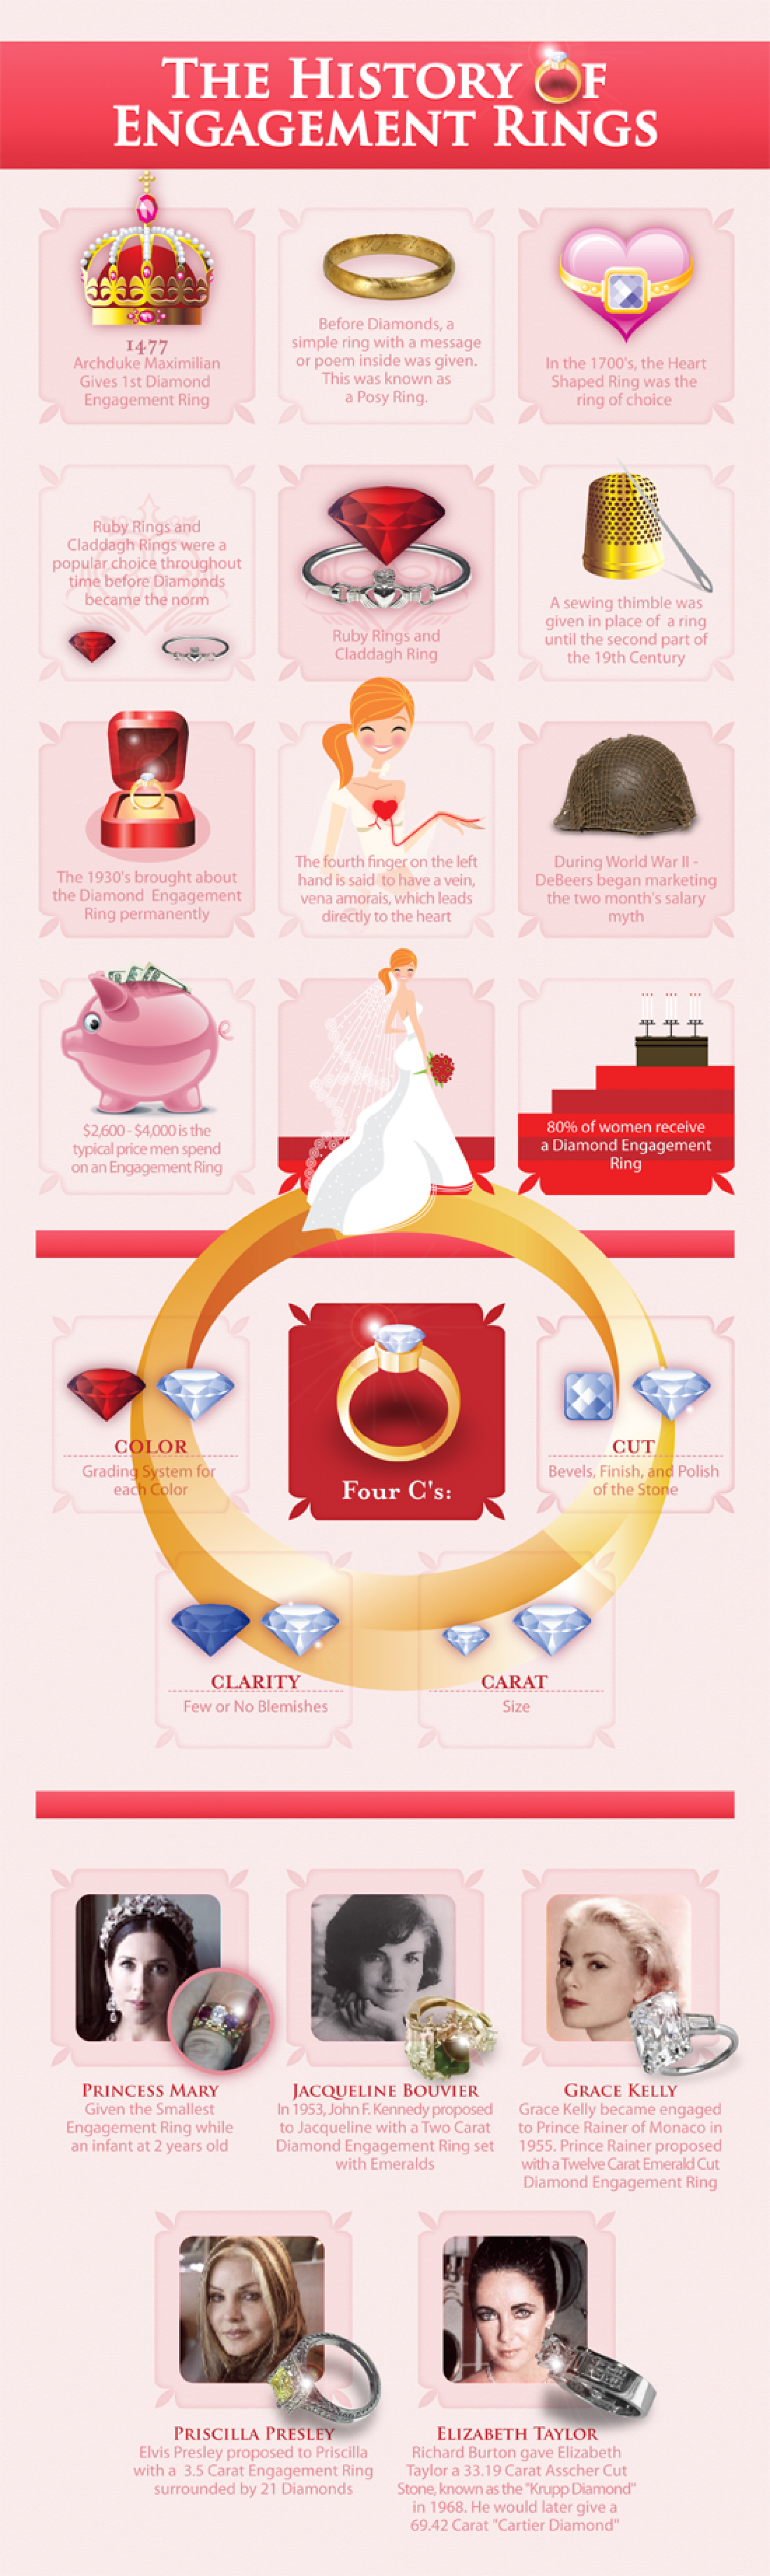 The History of Engagement Rings Infographic